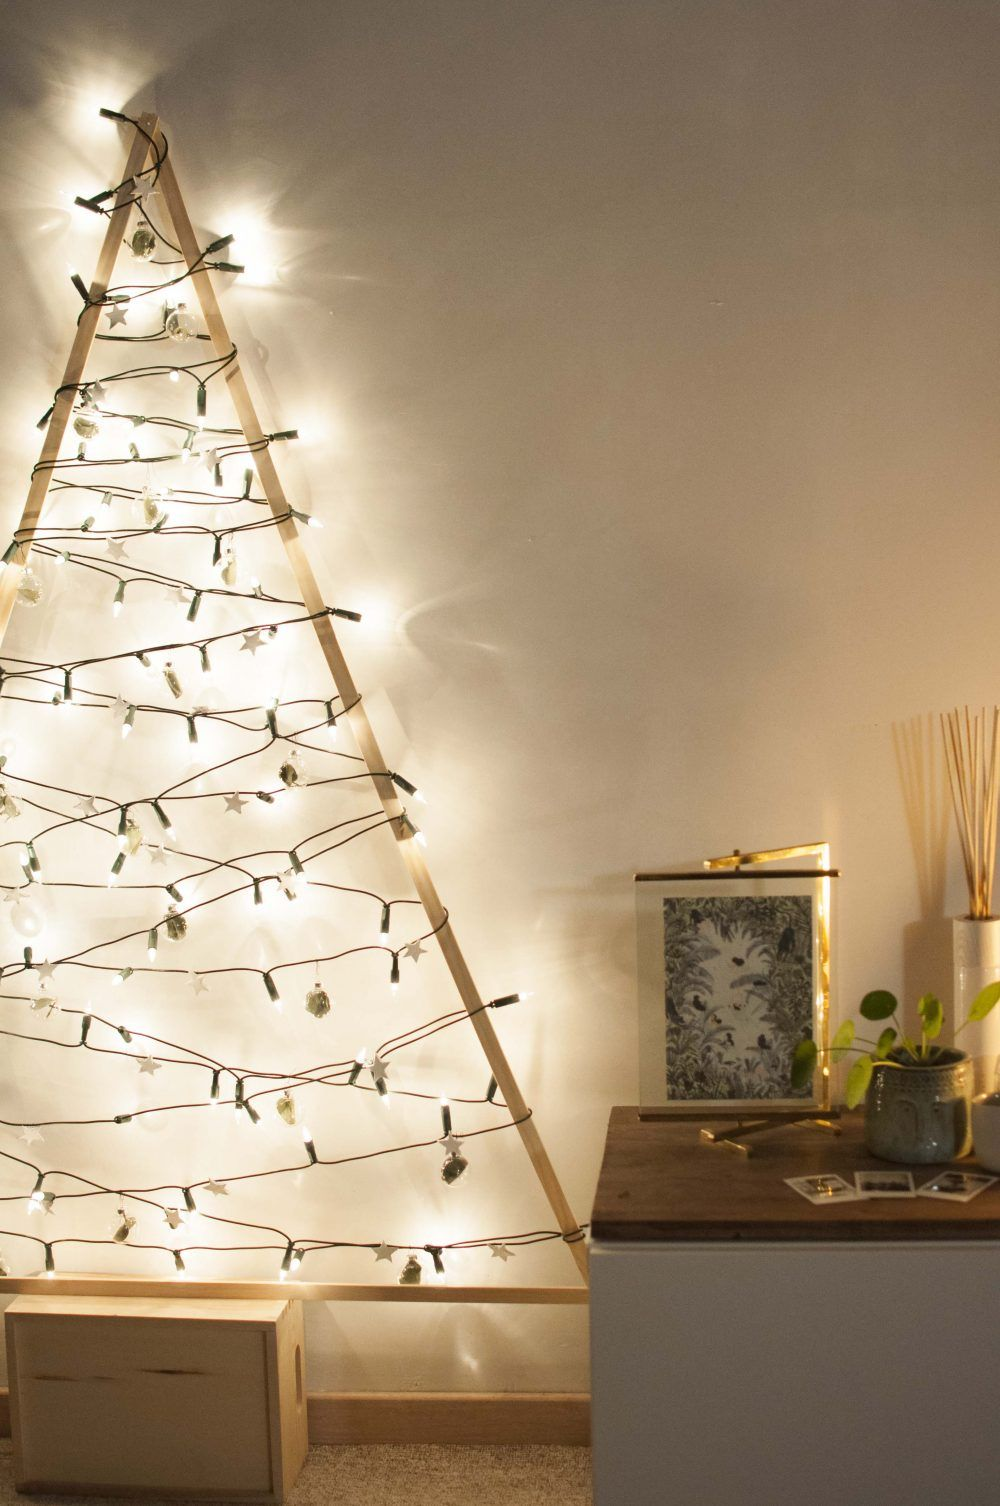 diy selbst gemachter tannenbaum mit lichterkette. Black Bedroom Furniture Sets. Home Design Ideas